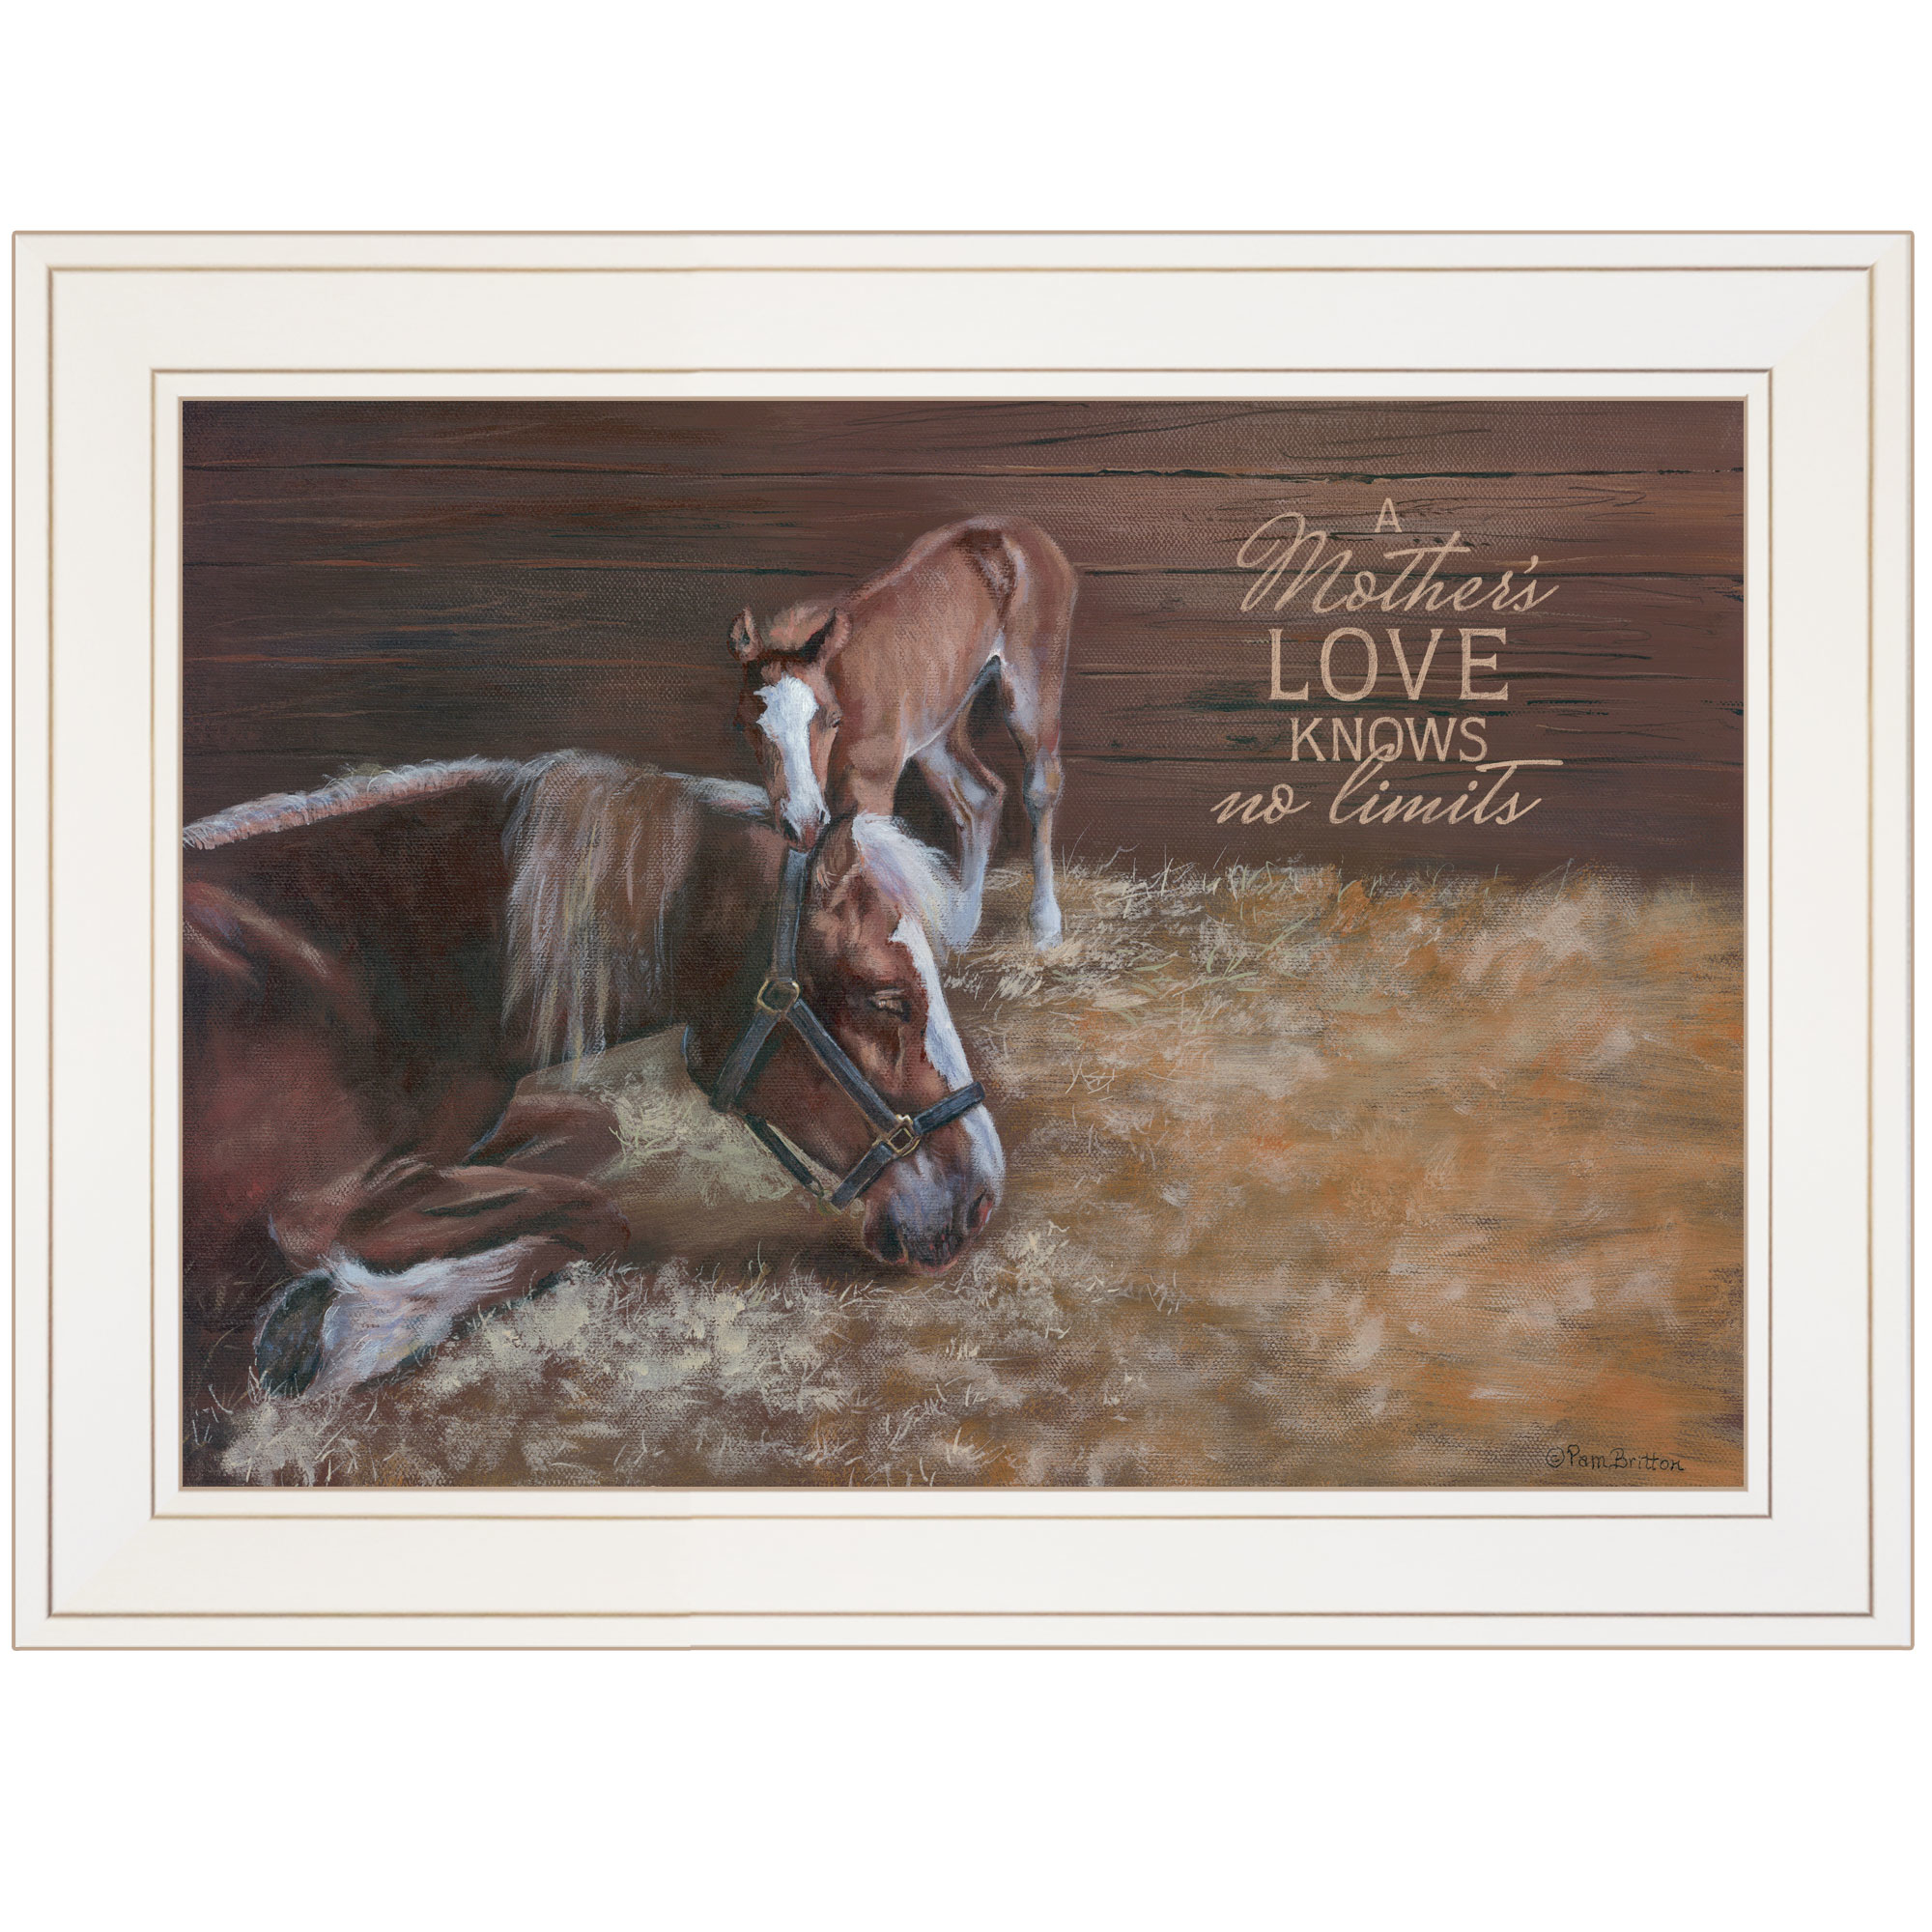 "Br390-226G A Mother Love(Horses) by artisan Pam Britton. This decorative white framed print(19x15) of a Mare with her colt. The say is ""Mother's Love Knows No Limits"". Print is textured no need for glass, and arrives ready to hang. * Textured Artwork with a 'rolled on' acid-free acrylic coating to create a canvas painting effect. * UV Protectant Coating protects artwork from fading. No glass is necessary. * Moulding adds natural beauty to the framed art. Frame is keyholed for the easy hanging. * This Fine Home Decor piece made in the USA by Woman Owned Business (Wbe) is a perfect gift for a friend or relative. *"